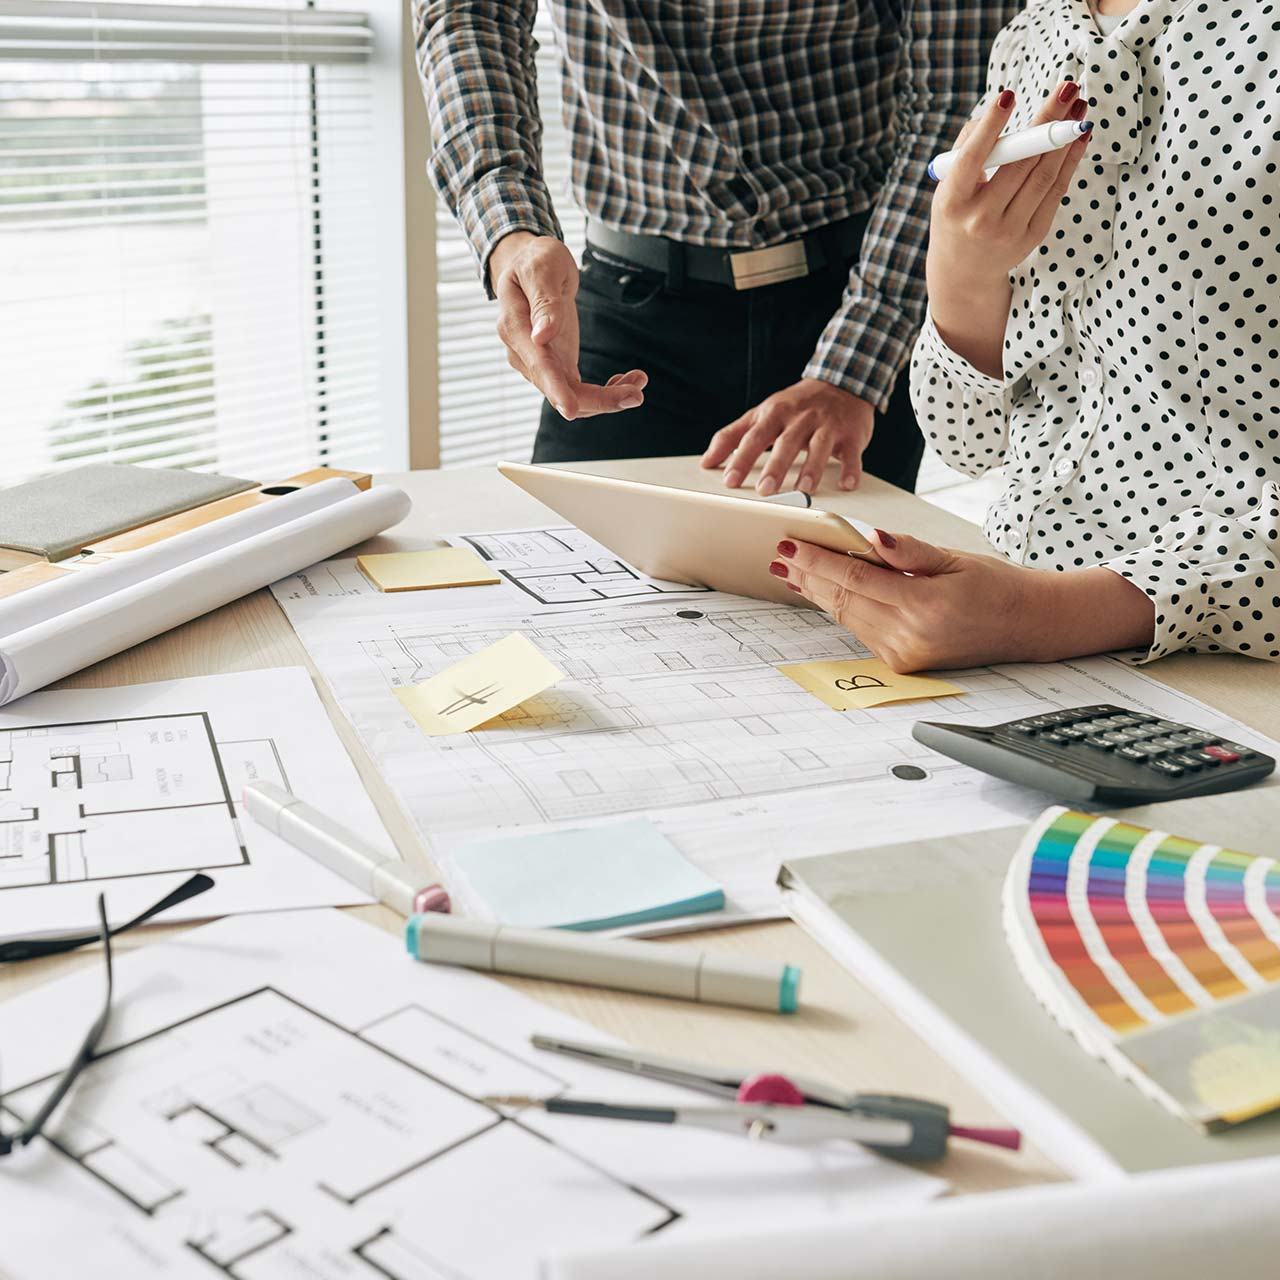 5 Things You Should Know Before Becoming An Interior Designer